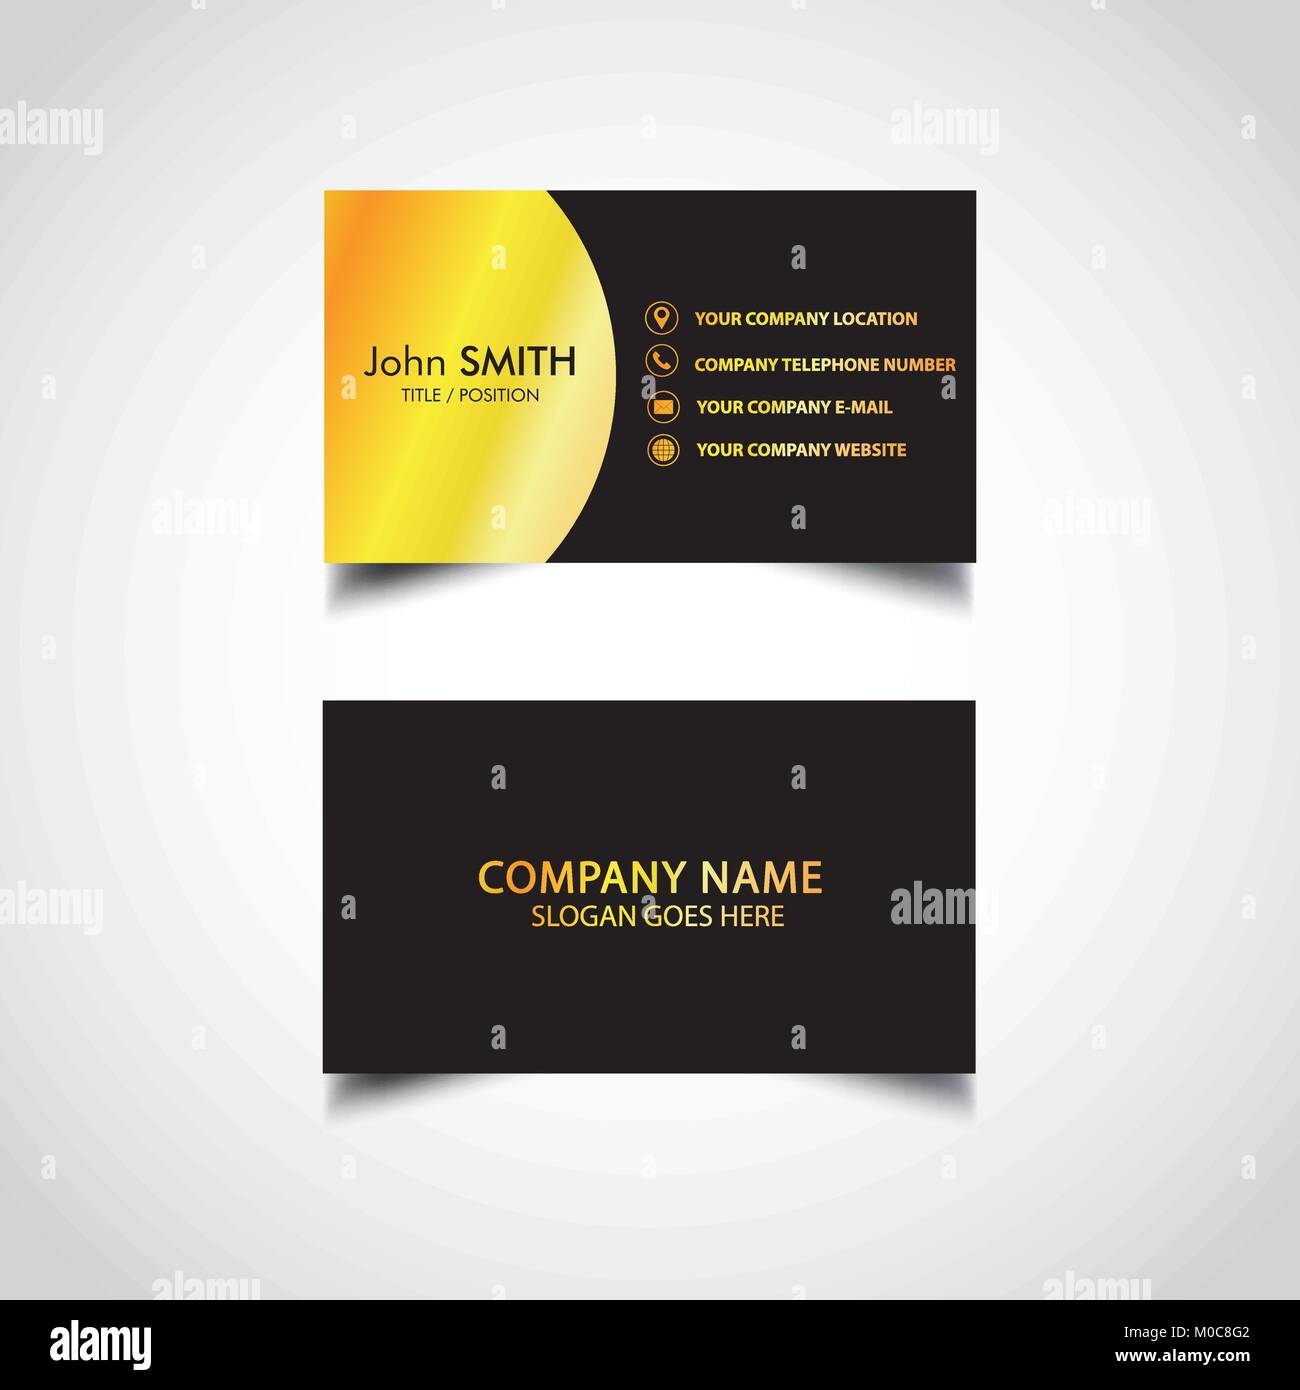 Golden business card template vector illustration eps file stock golden business card template vector illustration eps file friedricerecipe Gallery